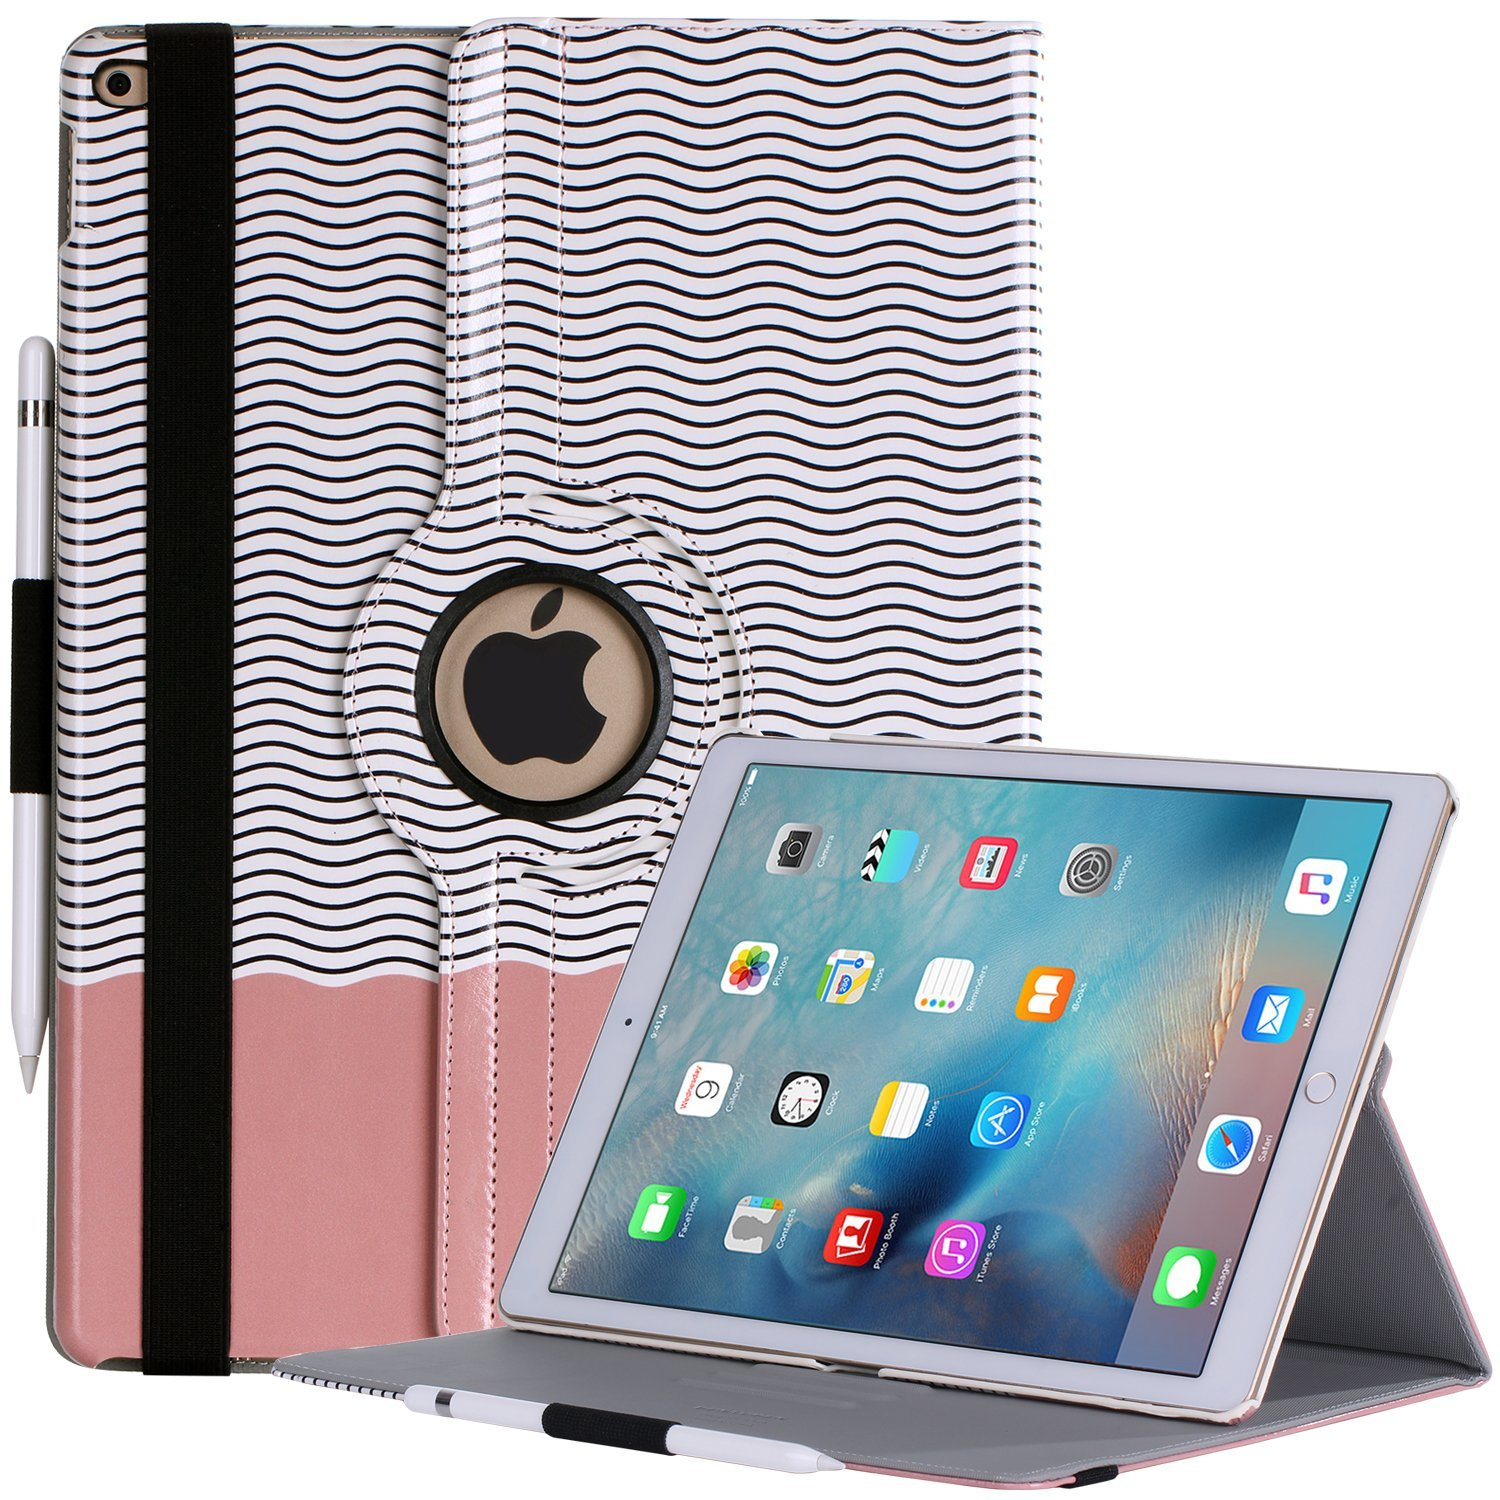 iPad Pro 12.9 Case, BENTOBEN 360 Rotating Magnetic Smart Cover Apple Pencil Holder Auto Sleep and Wake Up Premium Faux Leather with Kickstand [Patented Pattern] Case for iPad Pro 12.9 inch Retina